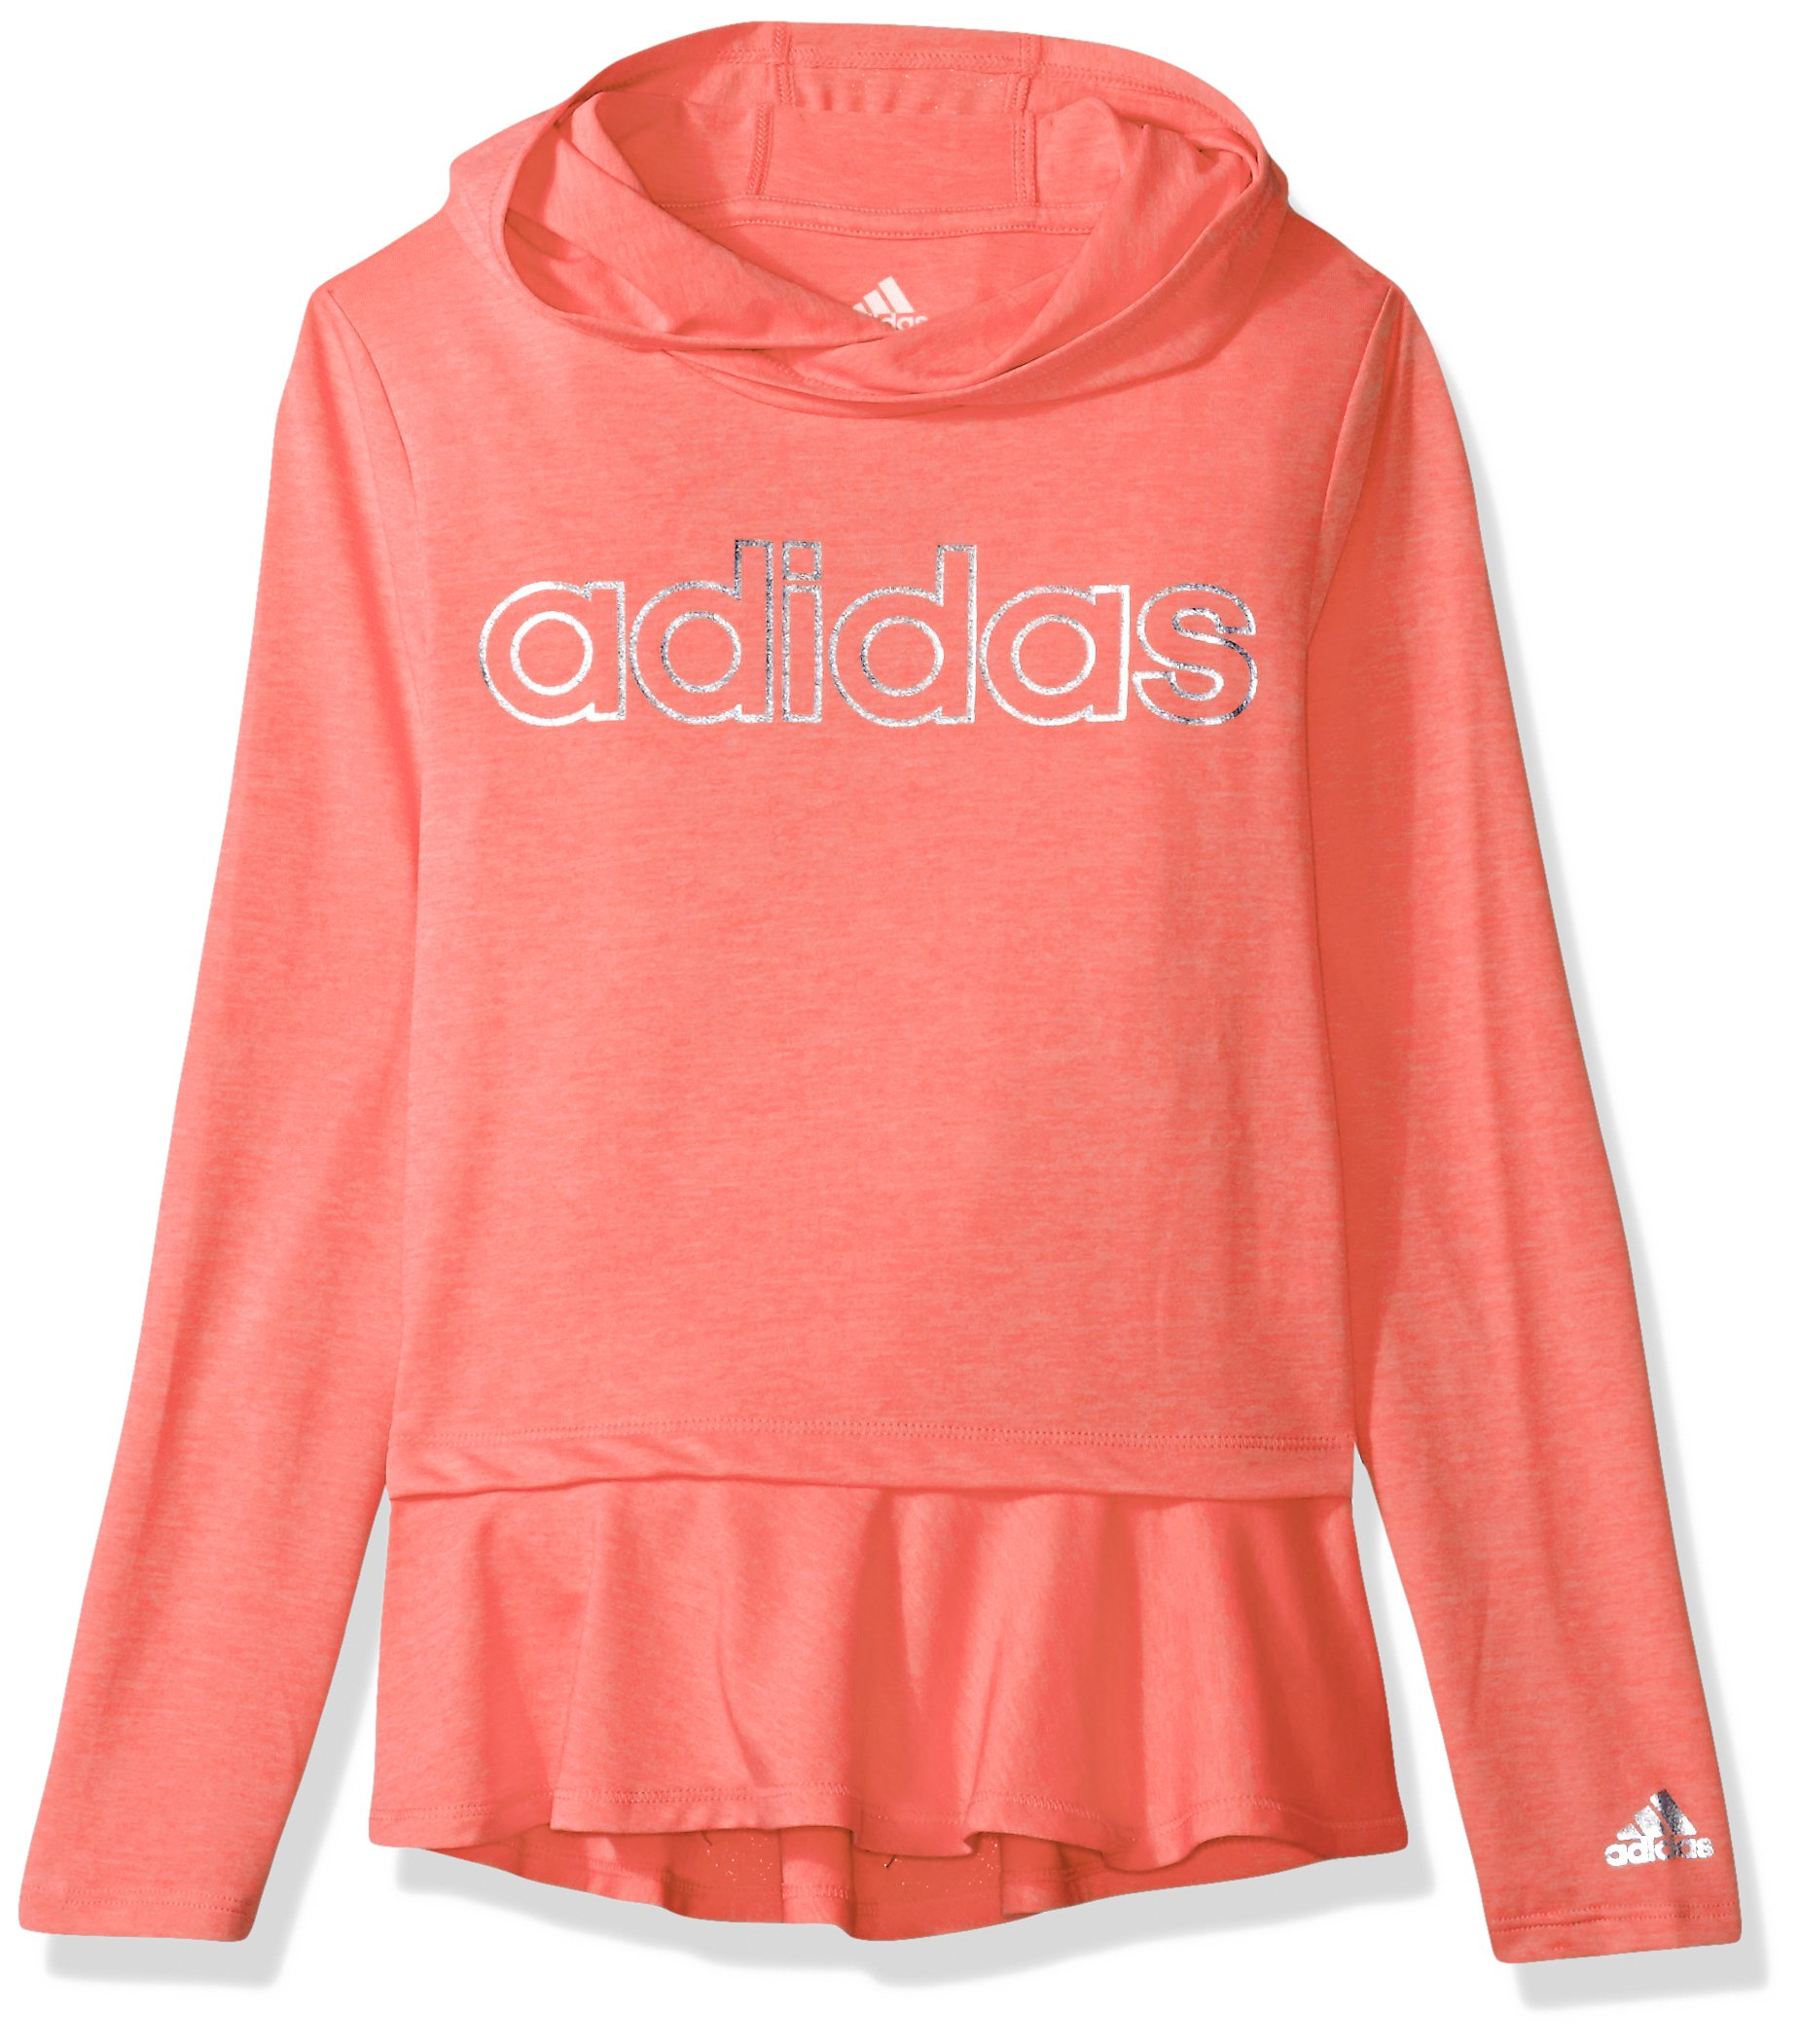 080d416881 Cheap Adidas Girls, find Adidas Girls deals on line at Alibaba.com